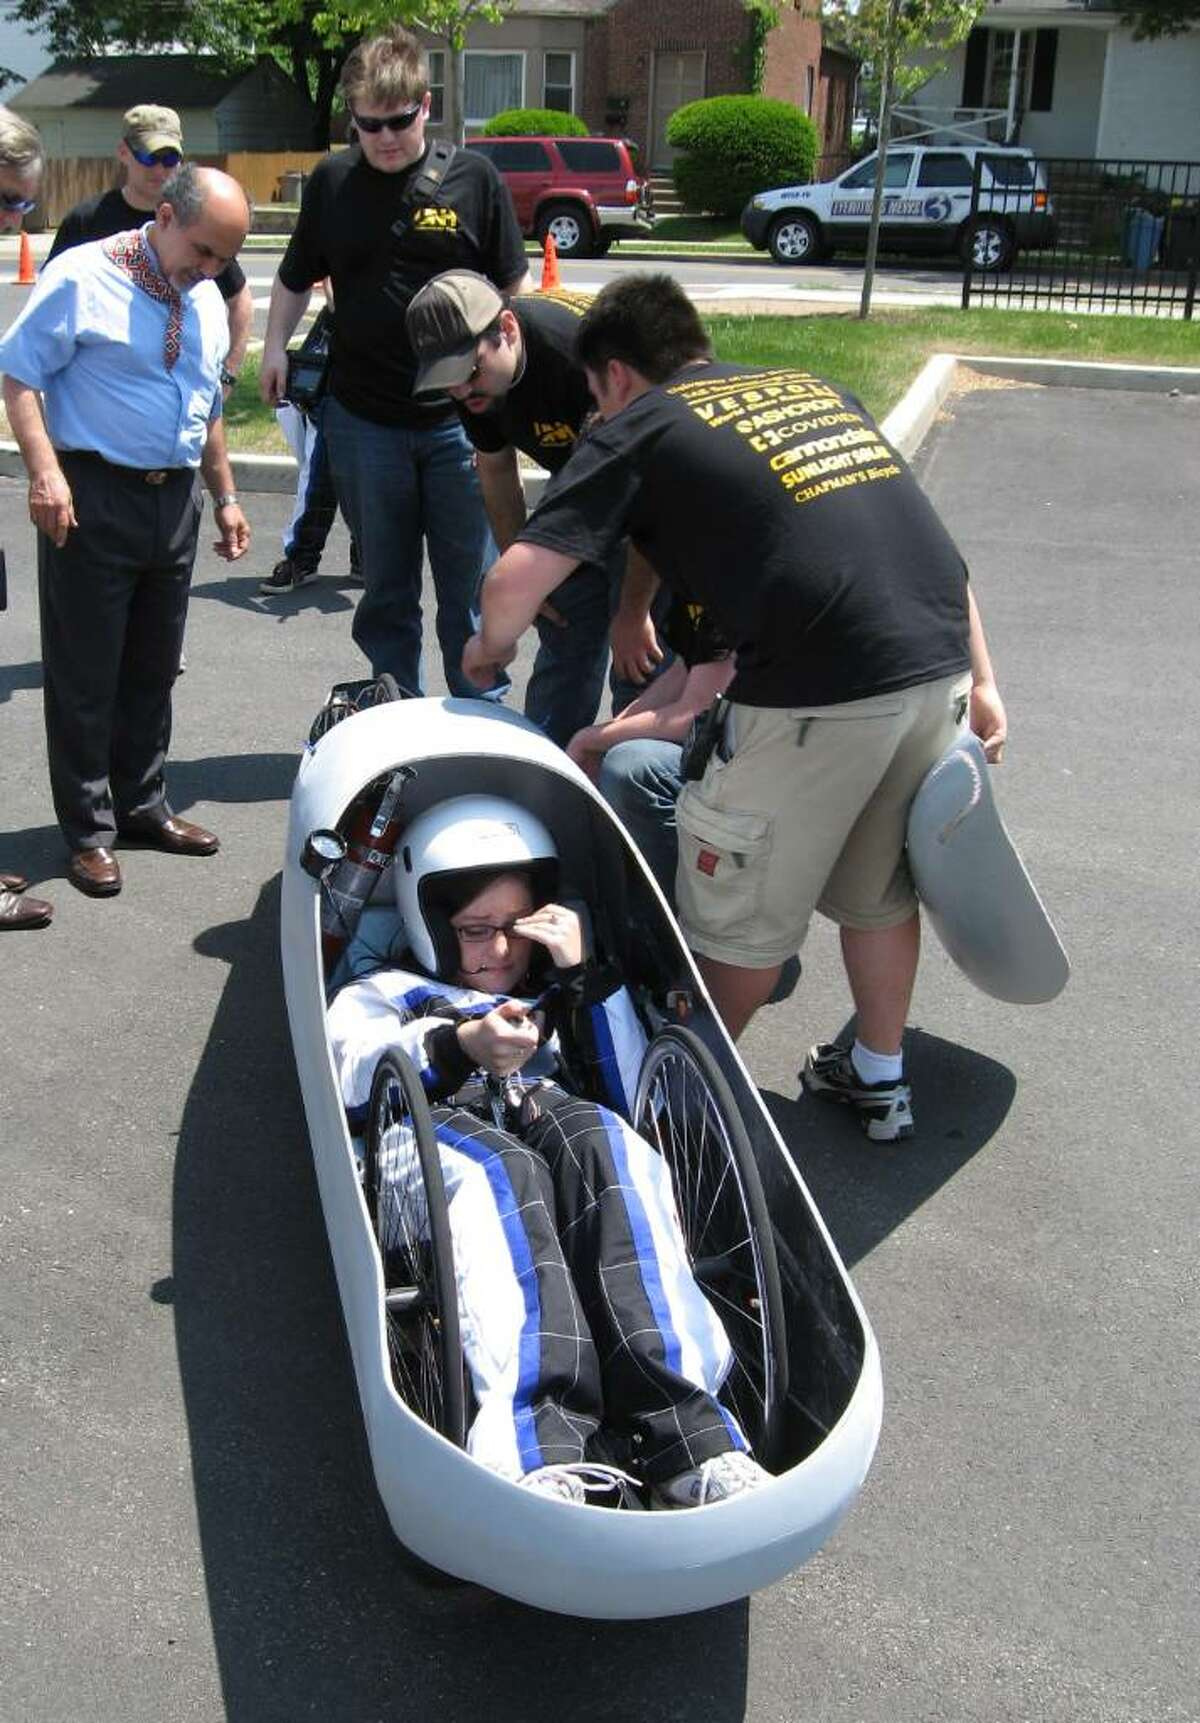 On Tuesday June 1, 2010, students and professors at the University of New Haven work on their 500 mpg experimental vehicle that will be entered in the national Supermileage Competition in Michigan next week. The 250-pound car is powered by a one-cylinder engine and has a shell of carbon fiber. The driver is Kacee Lawlor from Beacon, N.Y. Assoc. Dean Ali Montazer, Stephen Hegedus from Bethel, Roy Pilletere from West Haven and Thomas Ford of Bethel work to get the car ready for a test run.